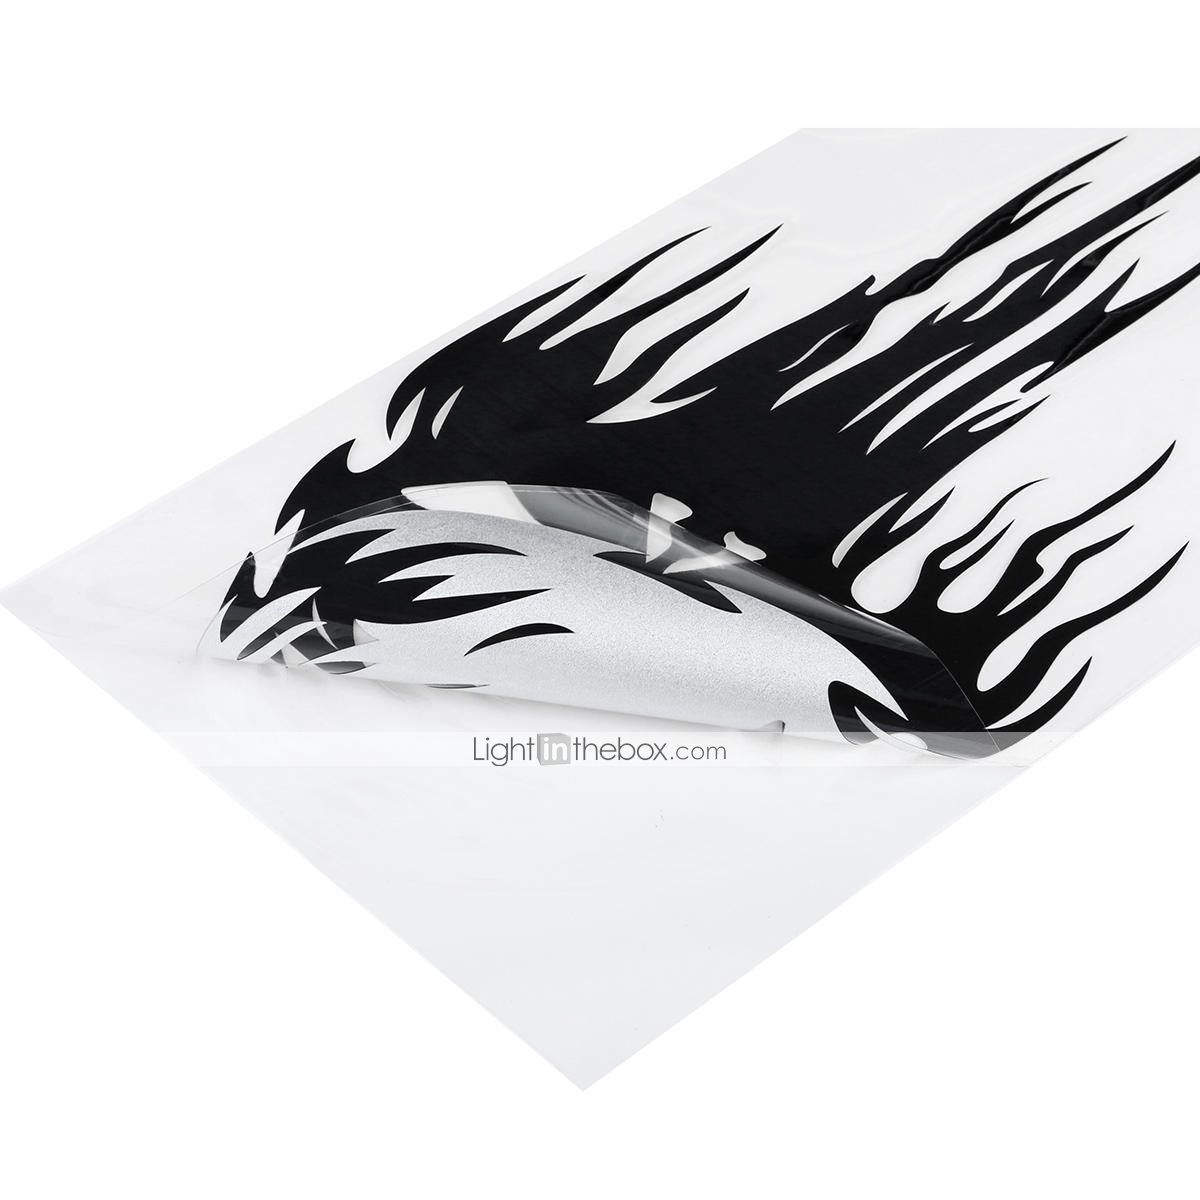 1×New Universal Motorcycle Crystal Decal Sticker Flame Decorator Stickers S/M/L Motorcycle Accessories